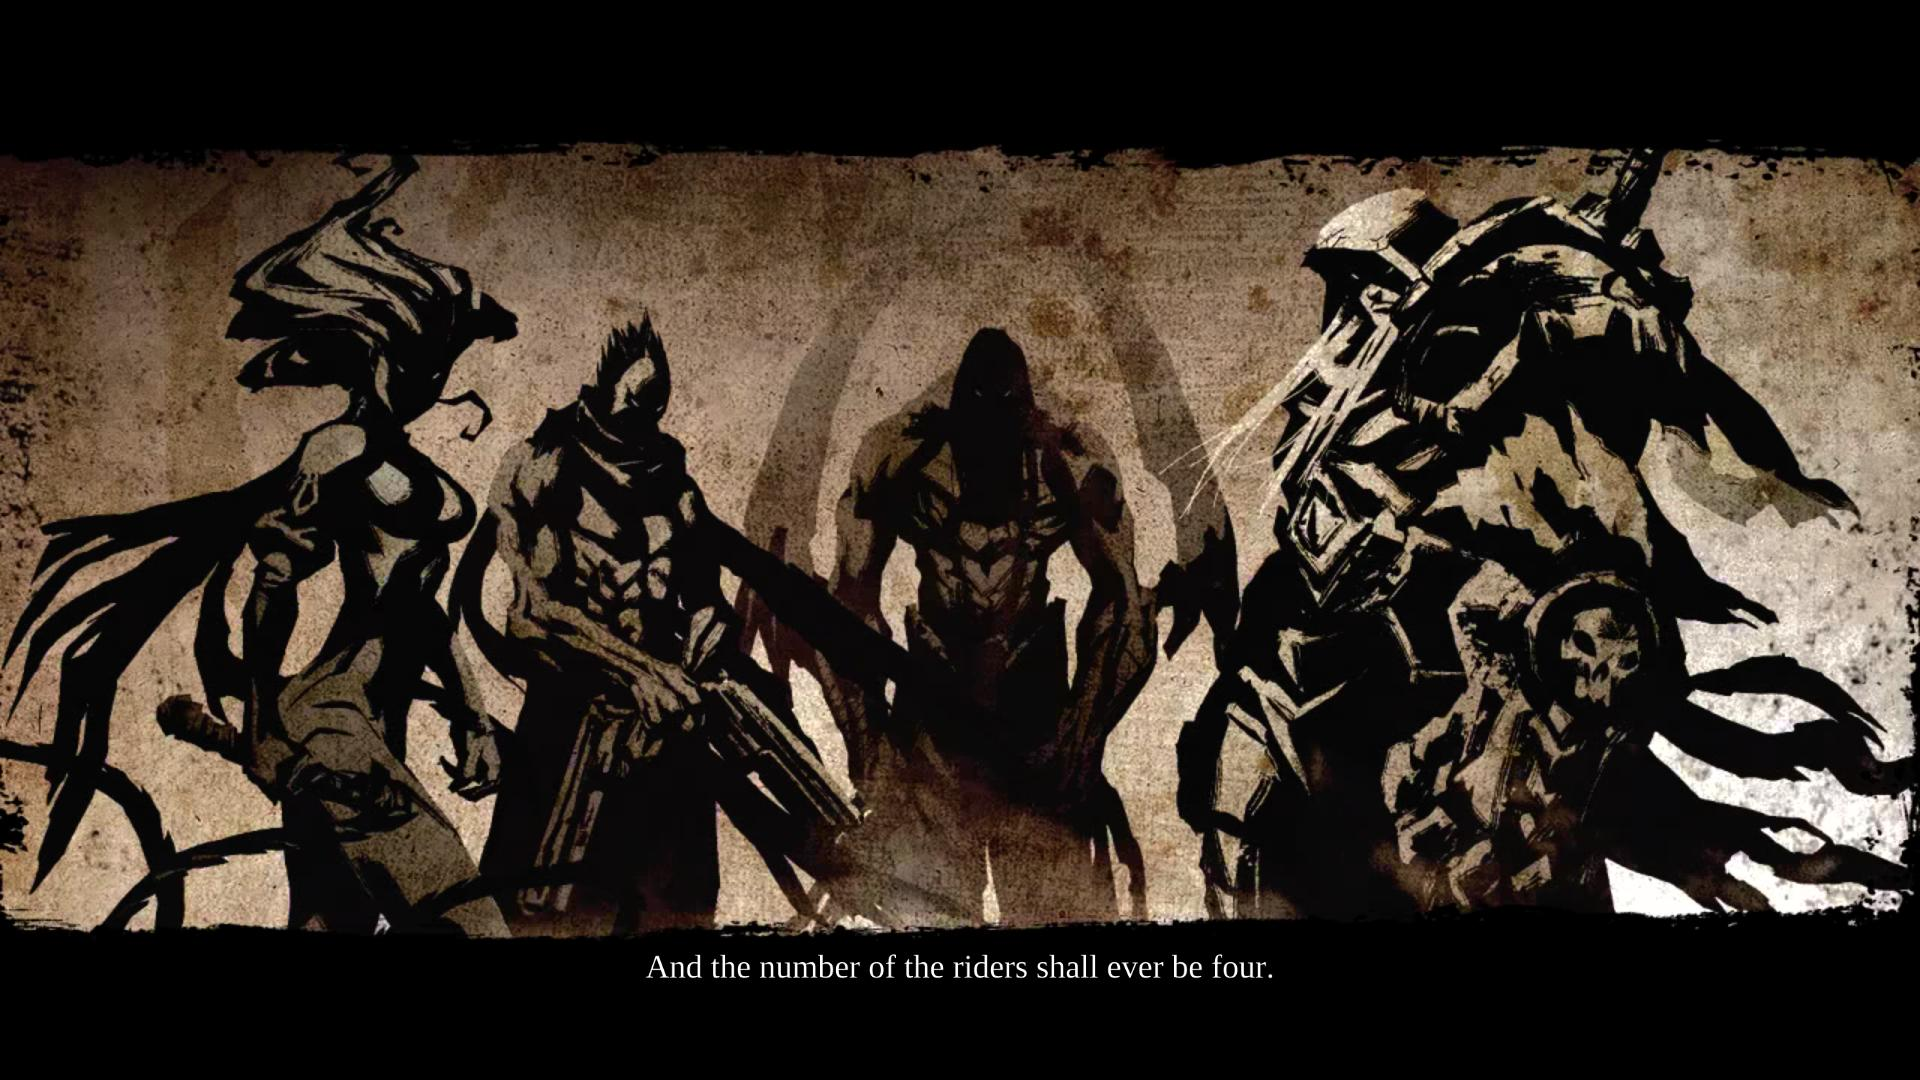 Darksider and Red Faction Getting Compilation Treatment